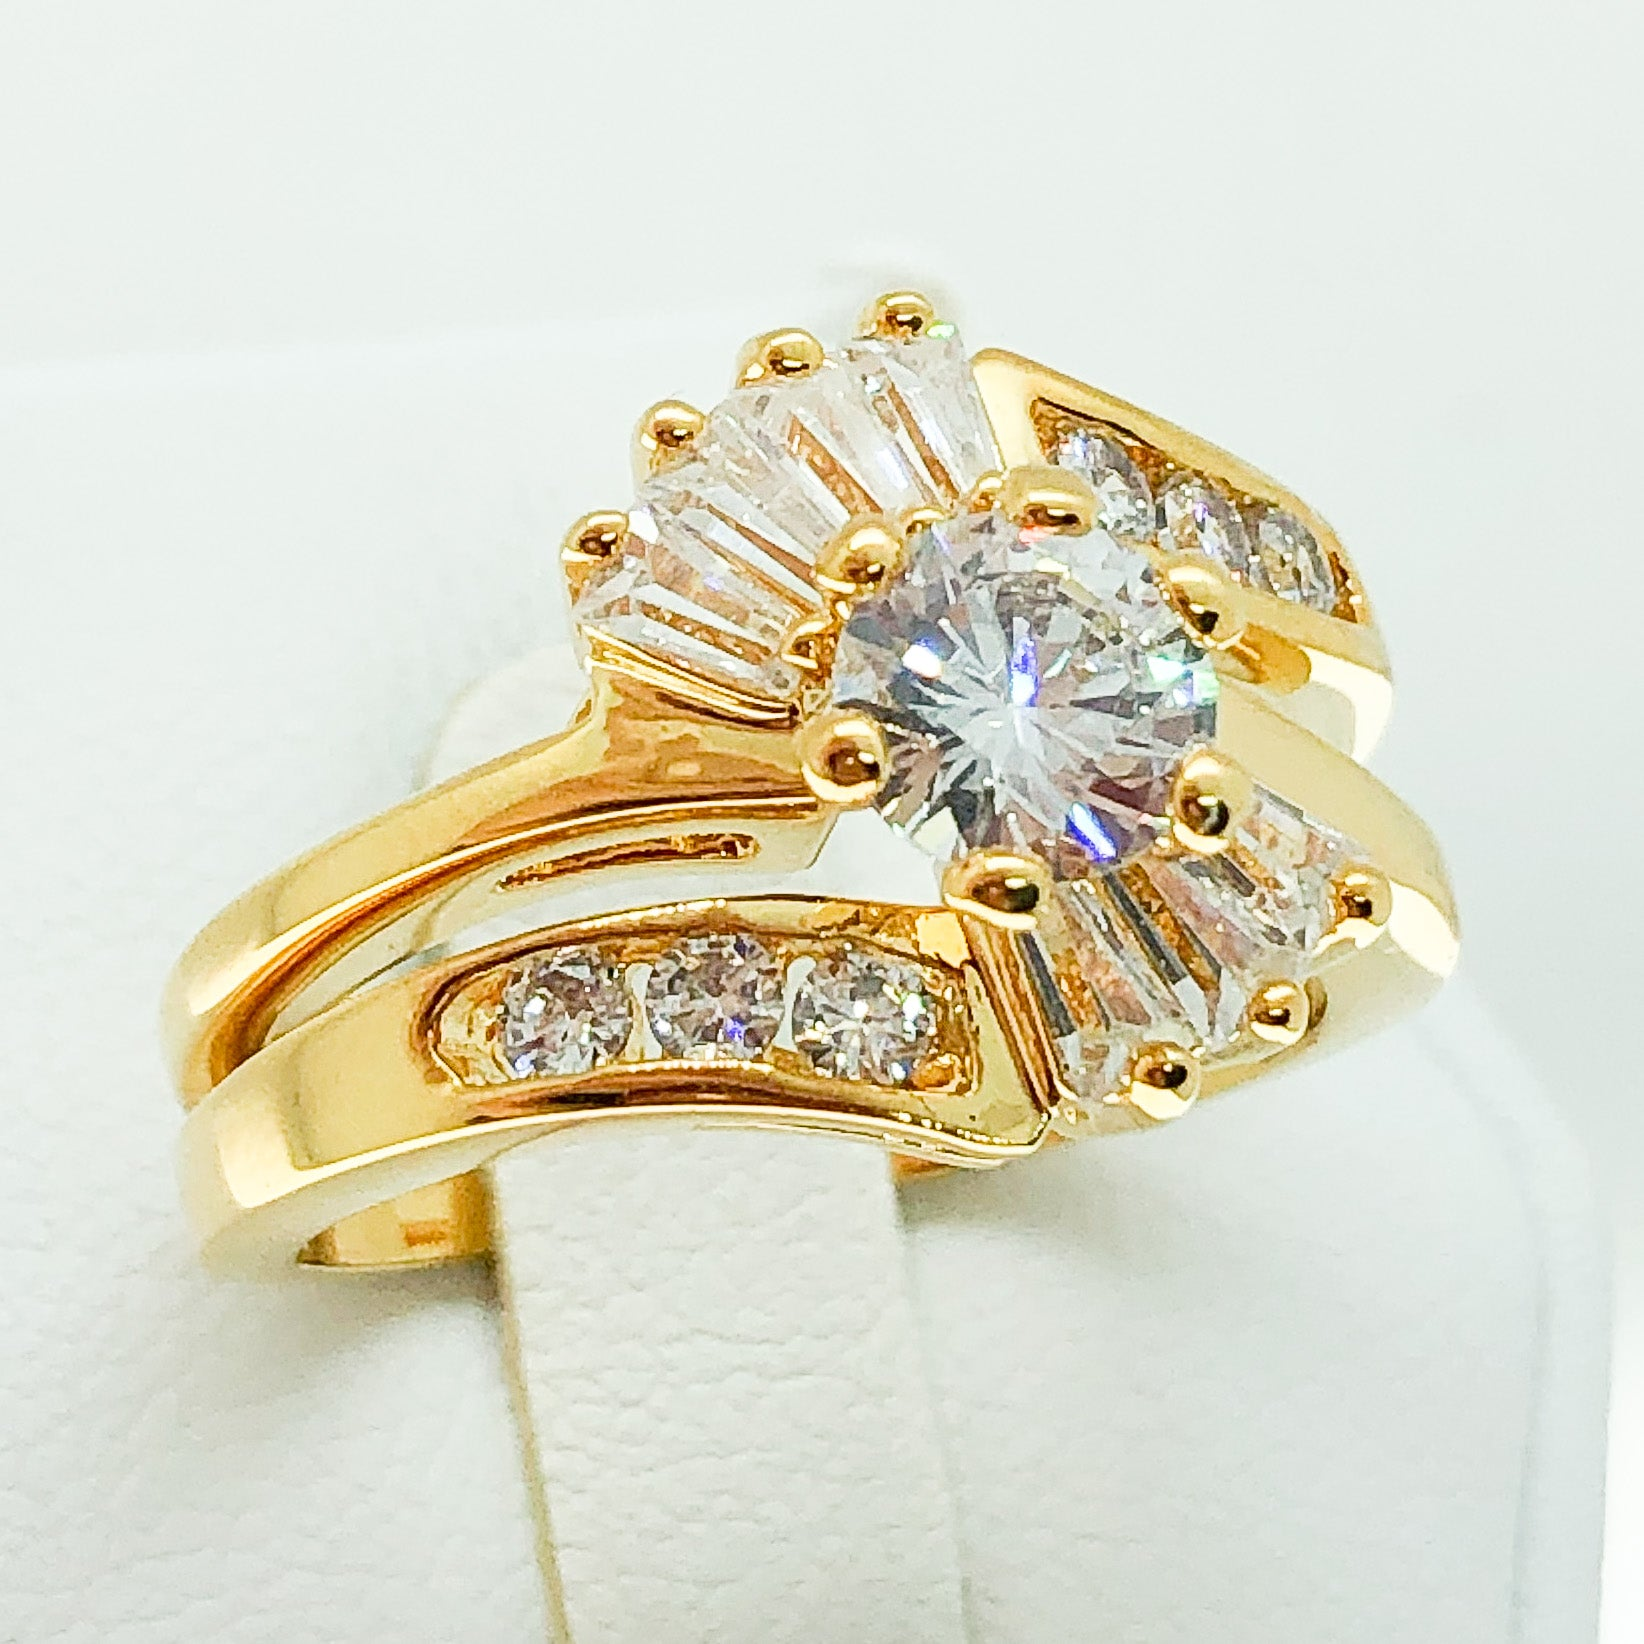 ID:R2433 Women Vintage Jewelry 18K Yellow Gold GF Staggering Engagement Wedding Diamonique Bridal Band Ring 2pcs/Set